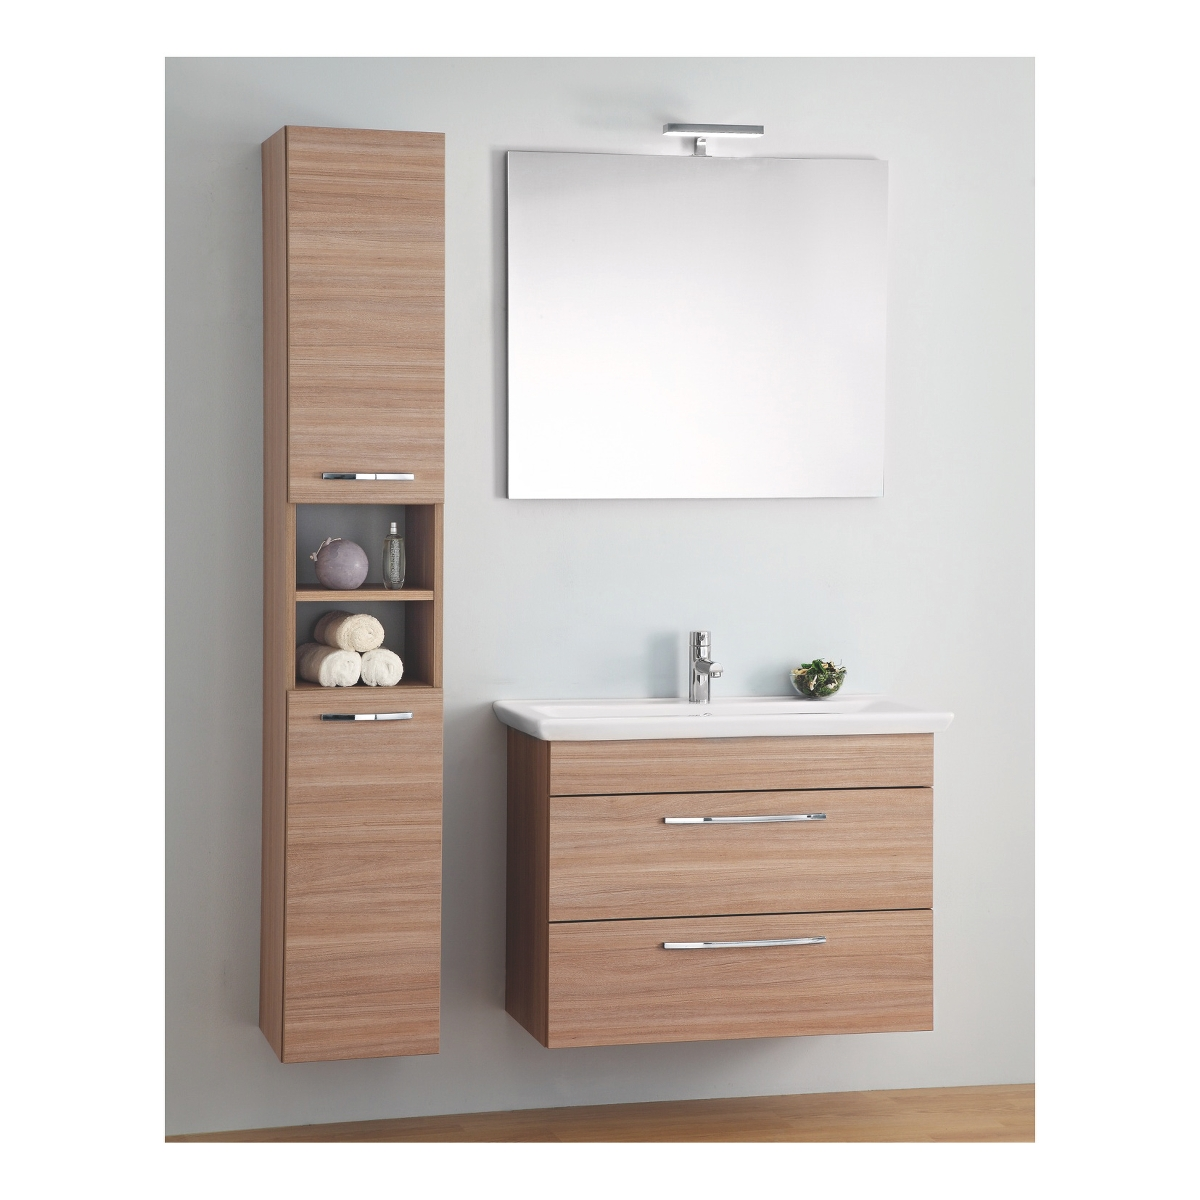 Leroy merlin mobile bagno gi 115 mobili bagno bathrooms pinterest wood bathroom and - Leroy merlin rivestimenti bagno ...